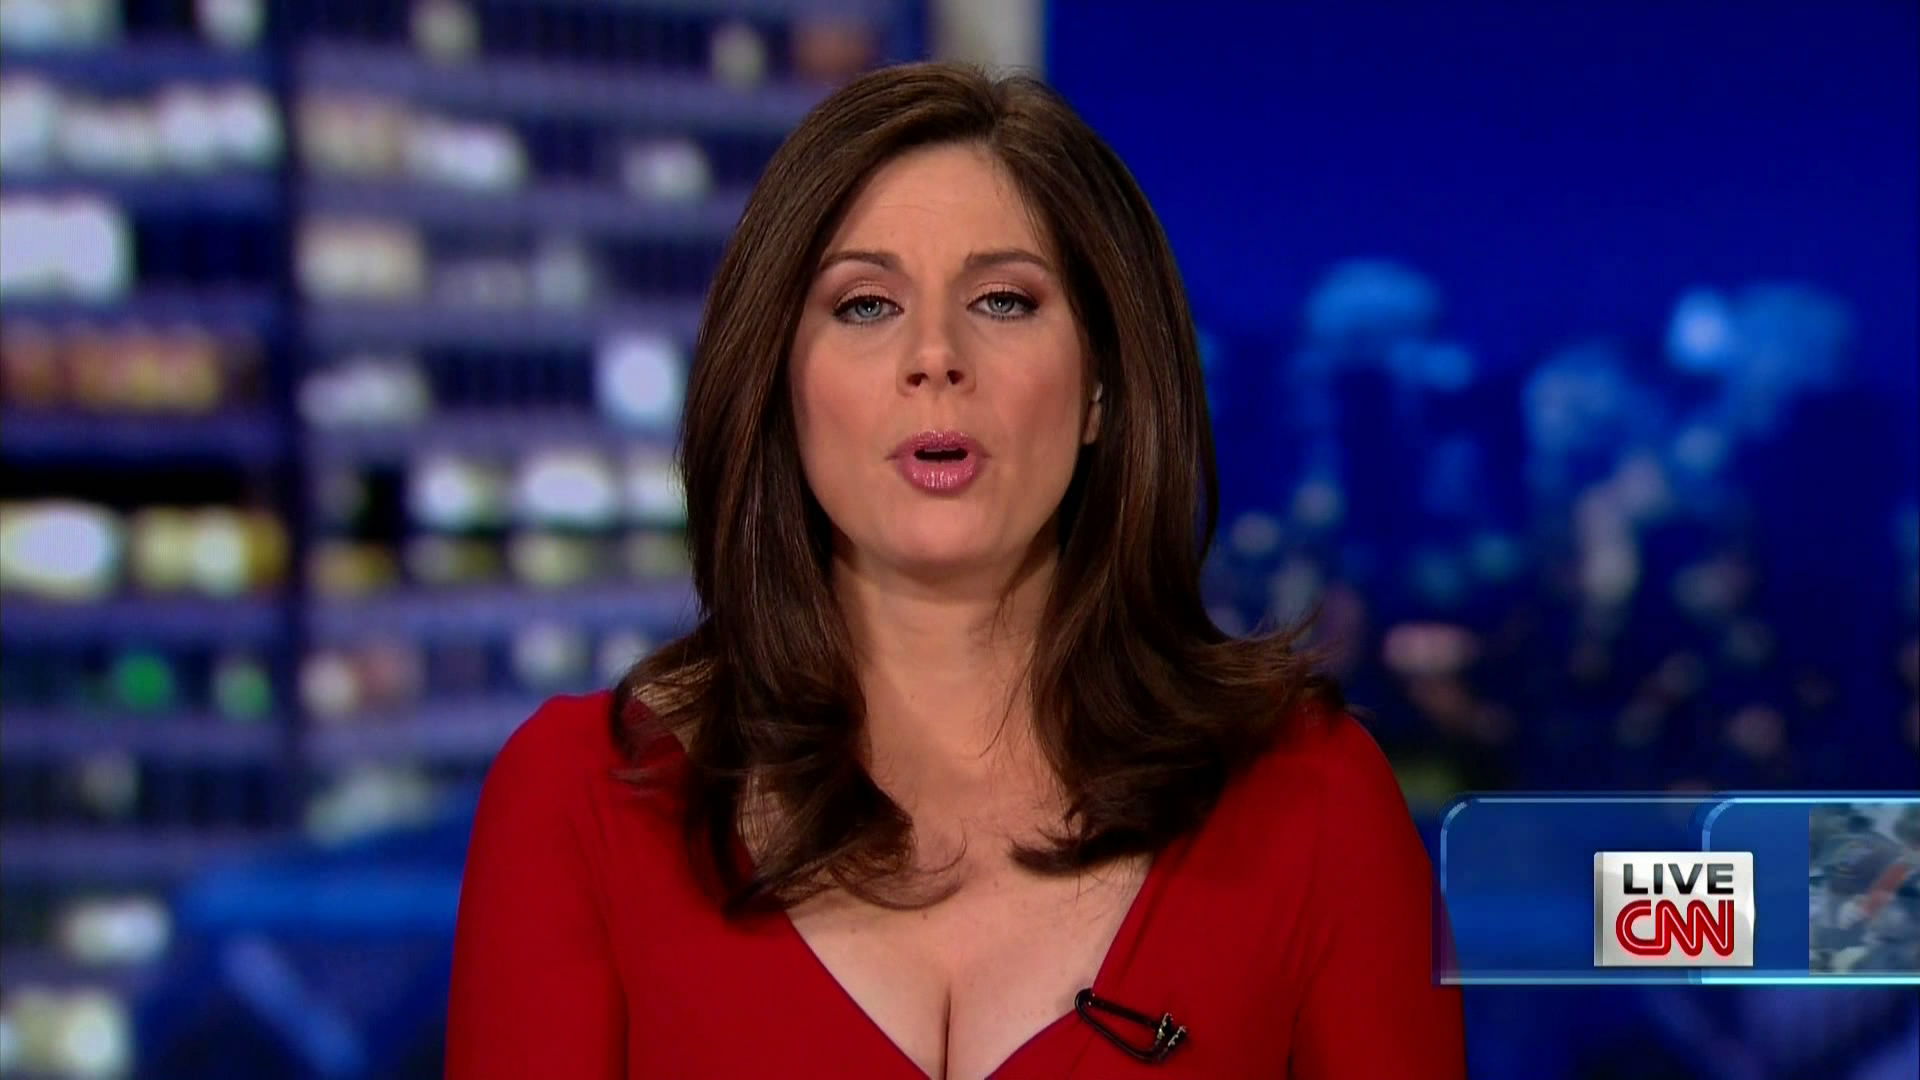 Erin Burnett Hot Bikini Pics, News Host Kissing Scene 16